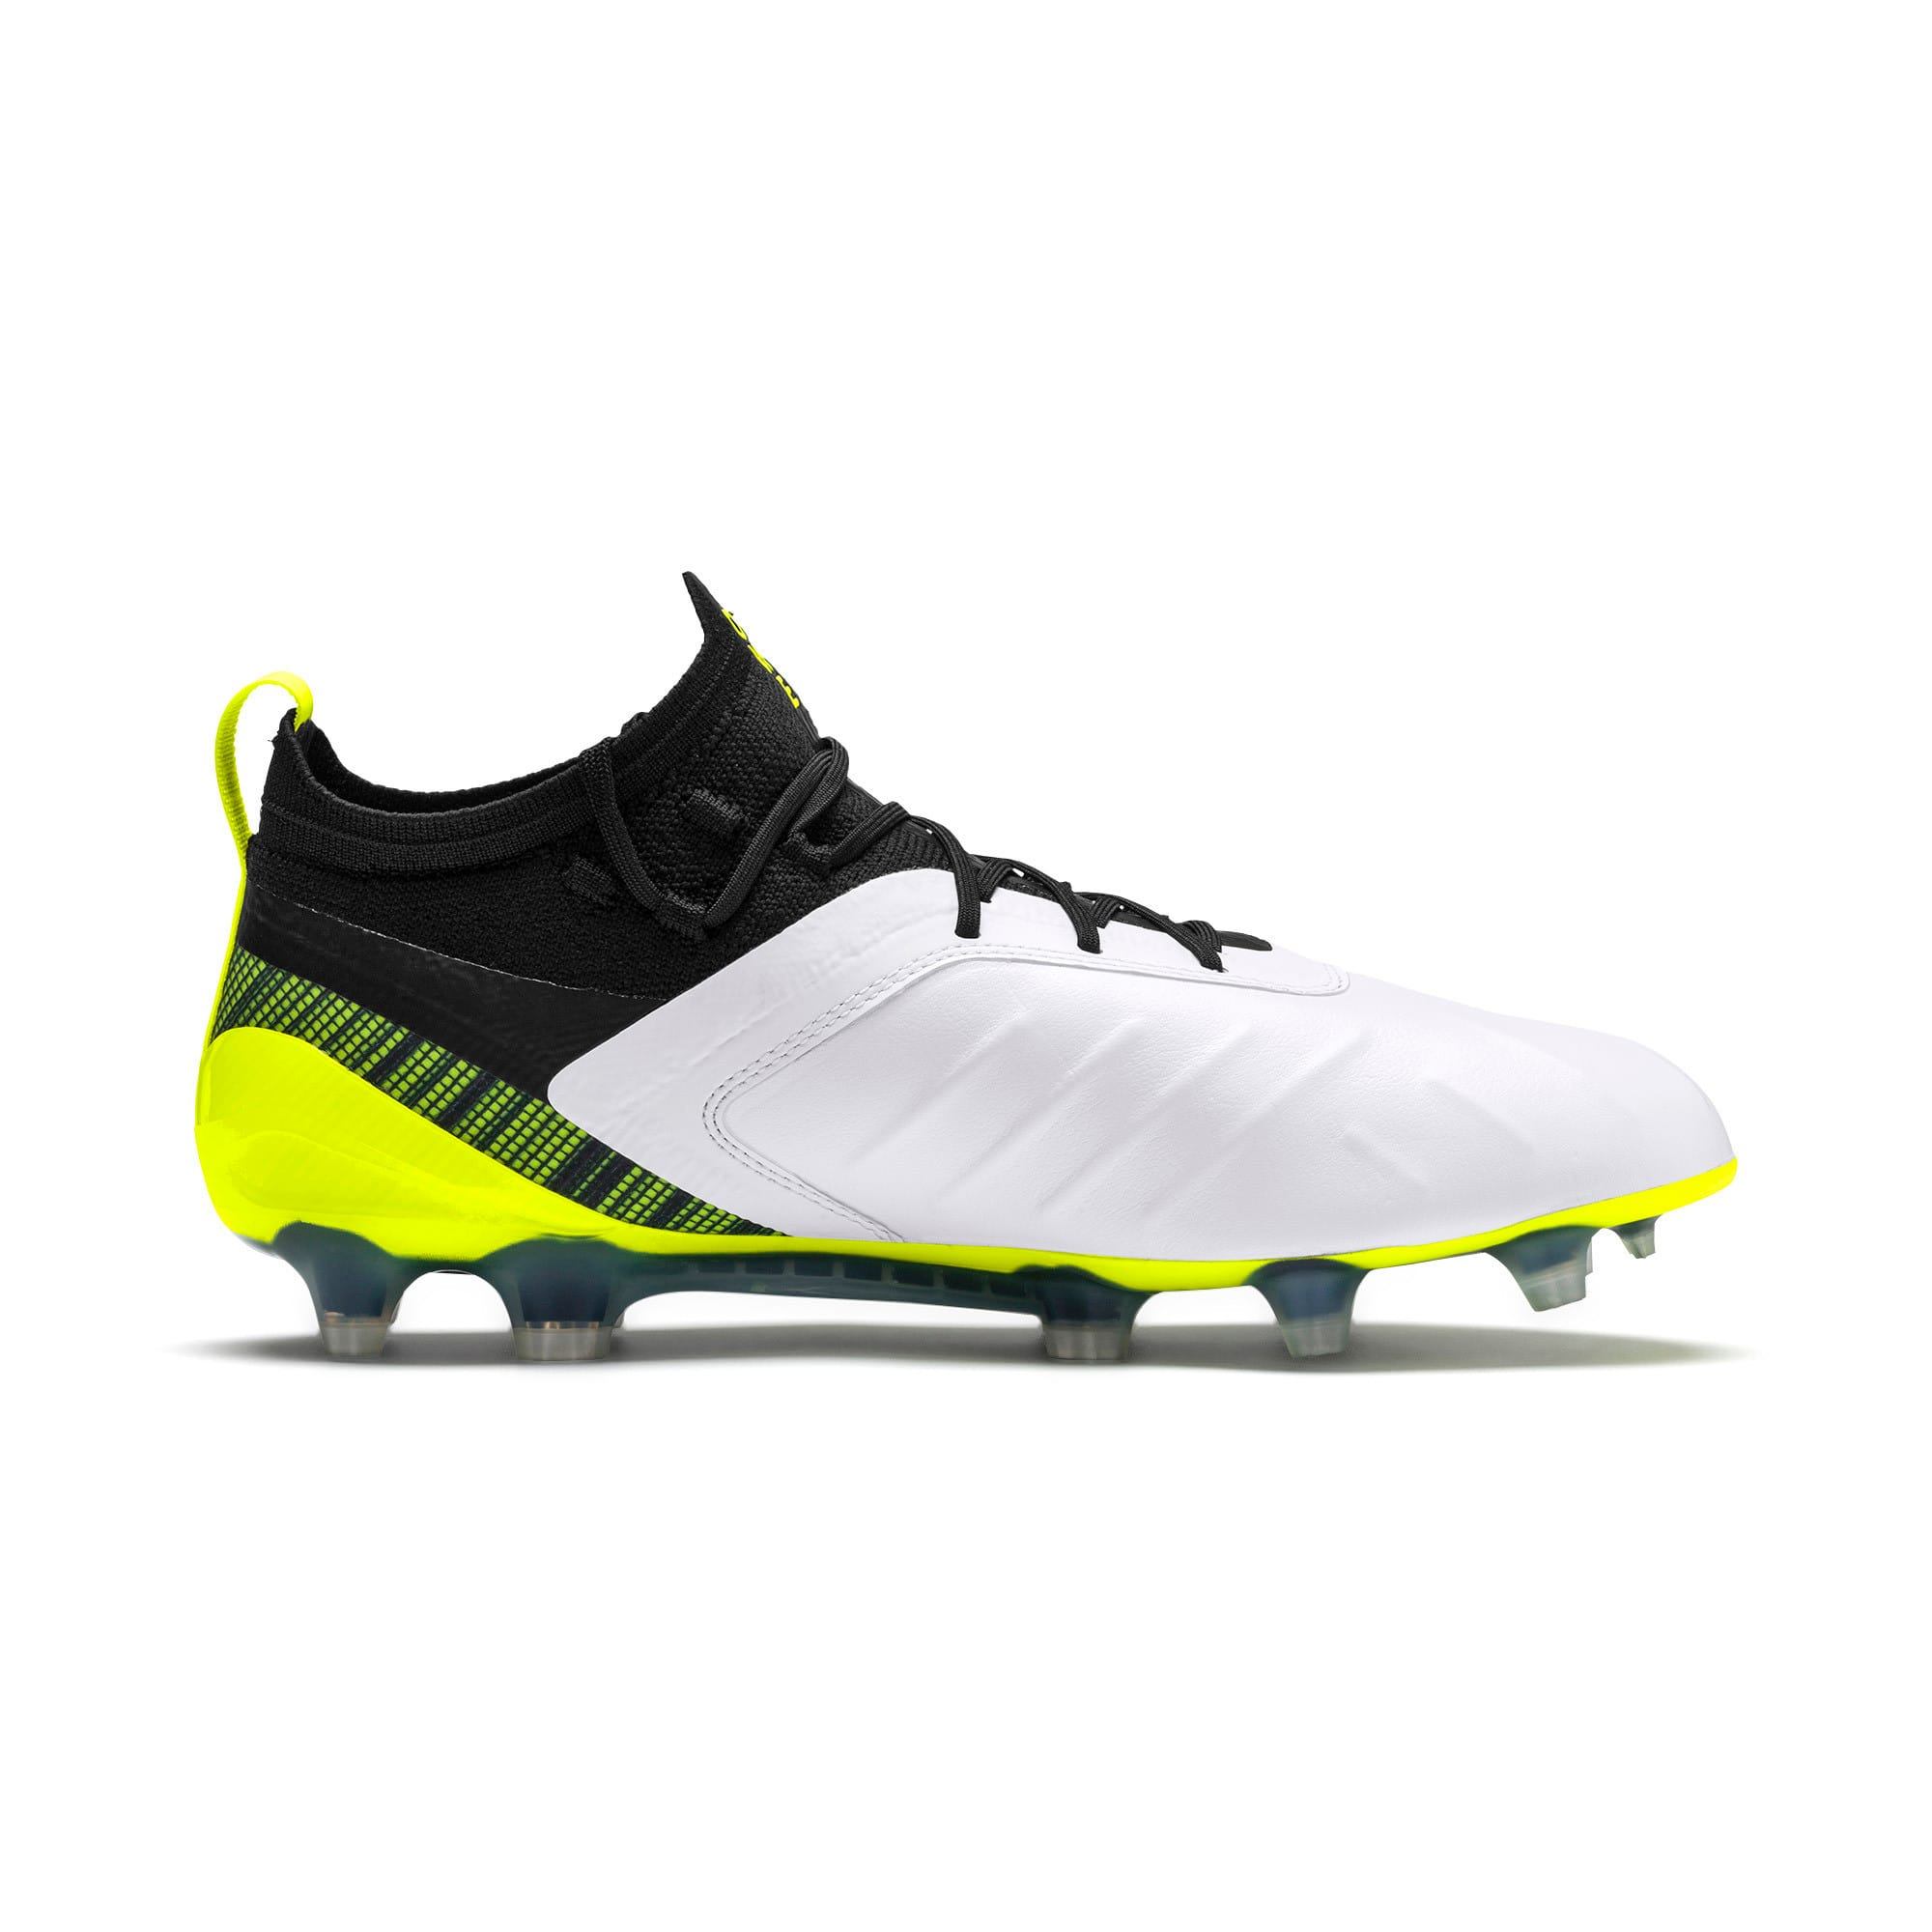 Thumbnail 6 of PUMA ONE 5.1 evoKNIT FG/AG Men's Football Boots, White-Black-Yellow Alert, medium